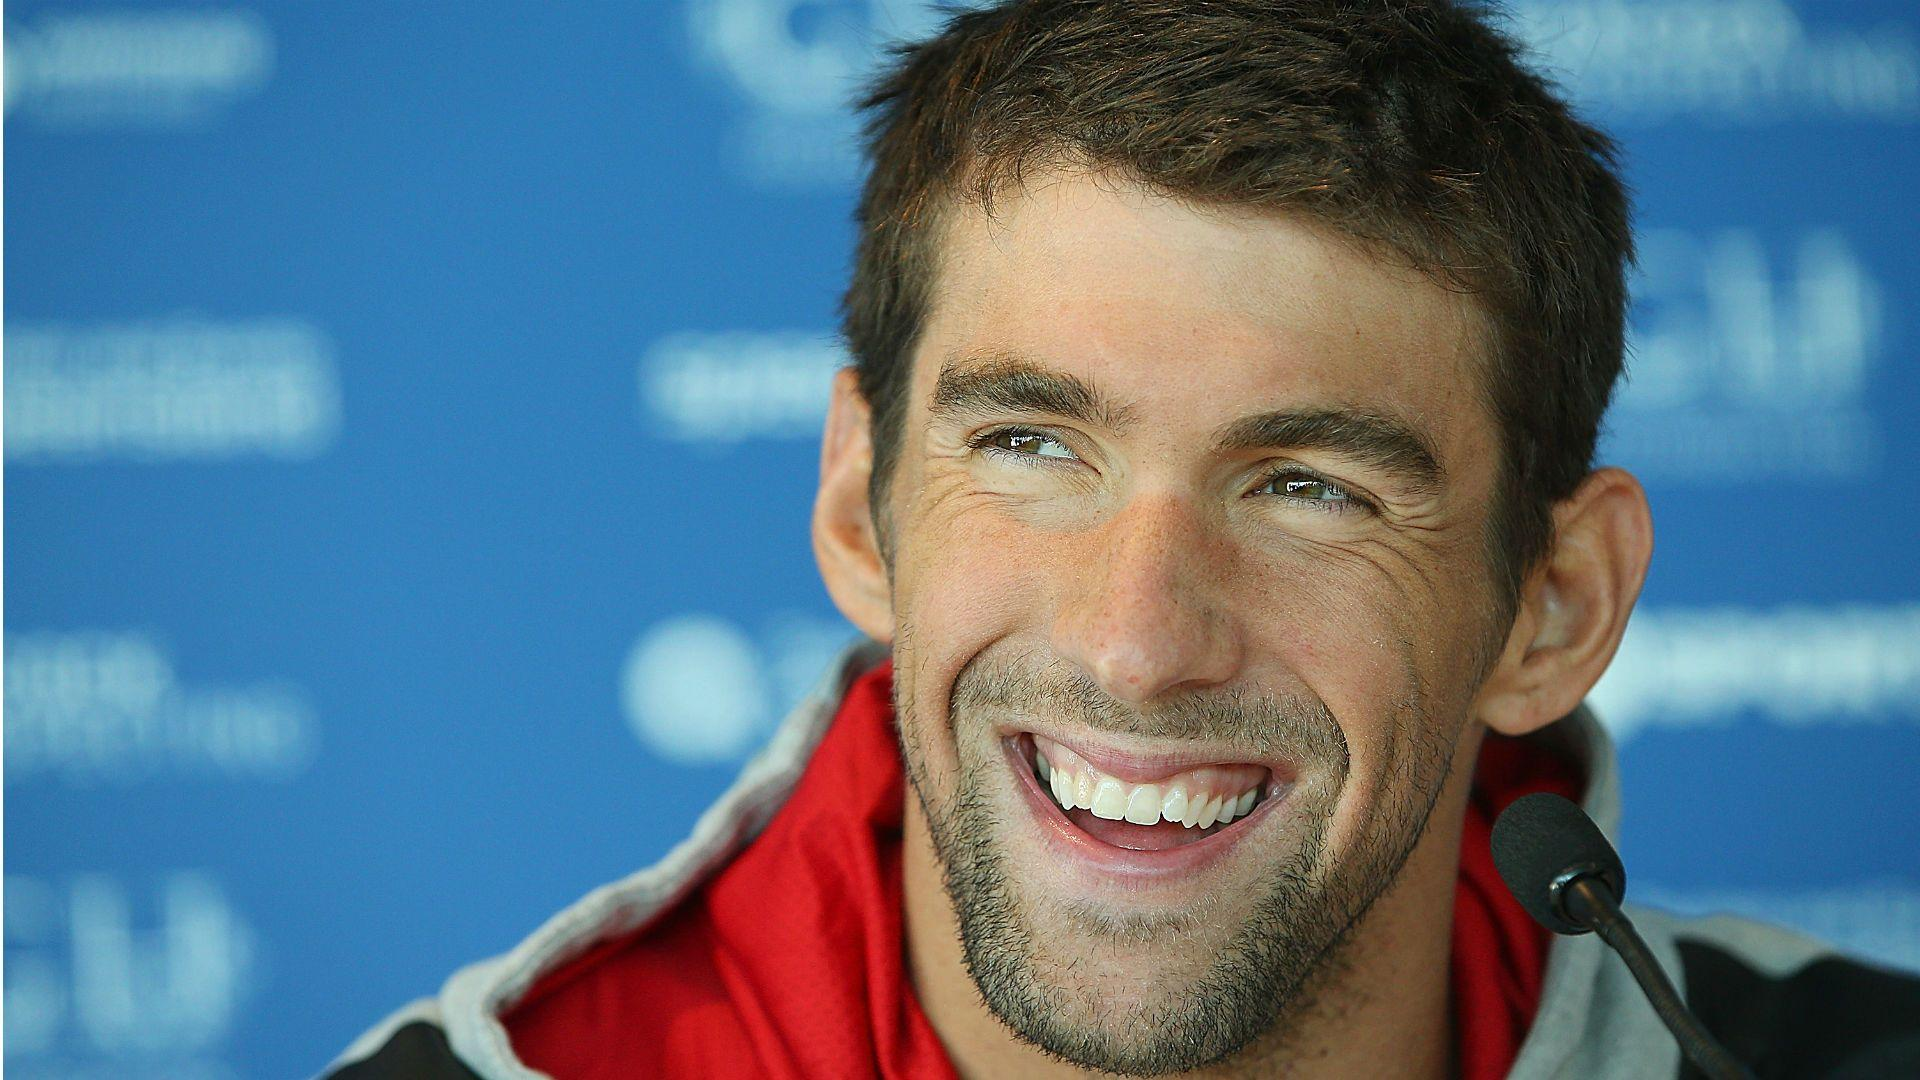 Michael Phelps High Definition Wallpapers